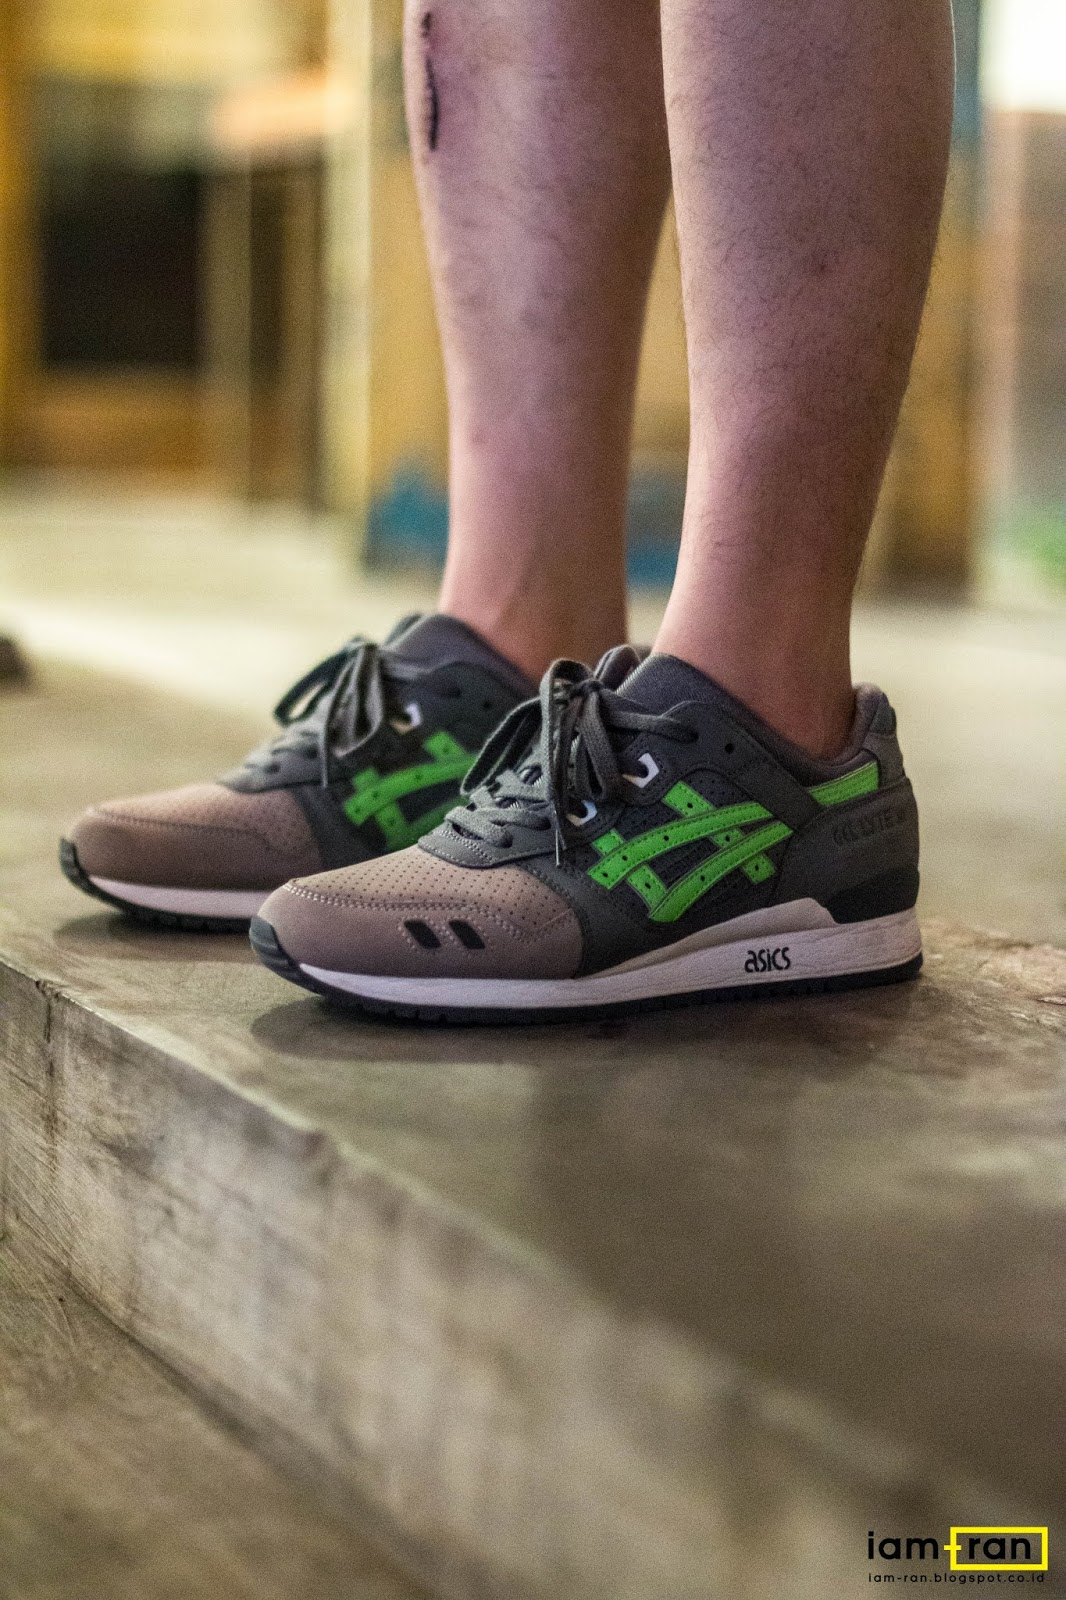 competitive price a6829 28f95 IAM-RAN: ON FEET : Dimas indro - Asics Gel Lyte 3 x Kith X ...